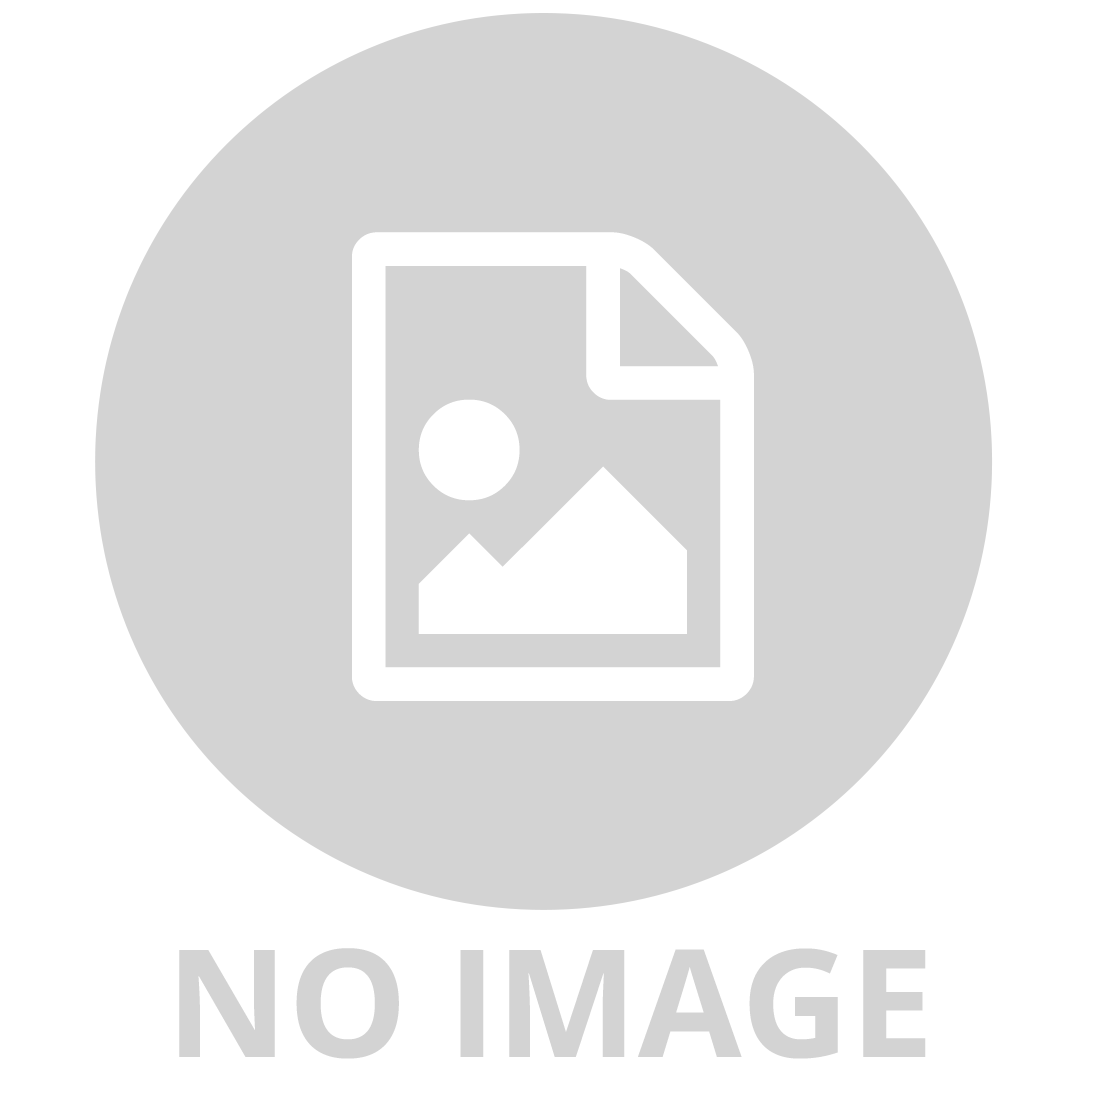 OUR GENERATION PUPPY HOUSE